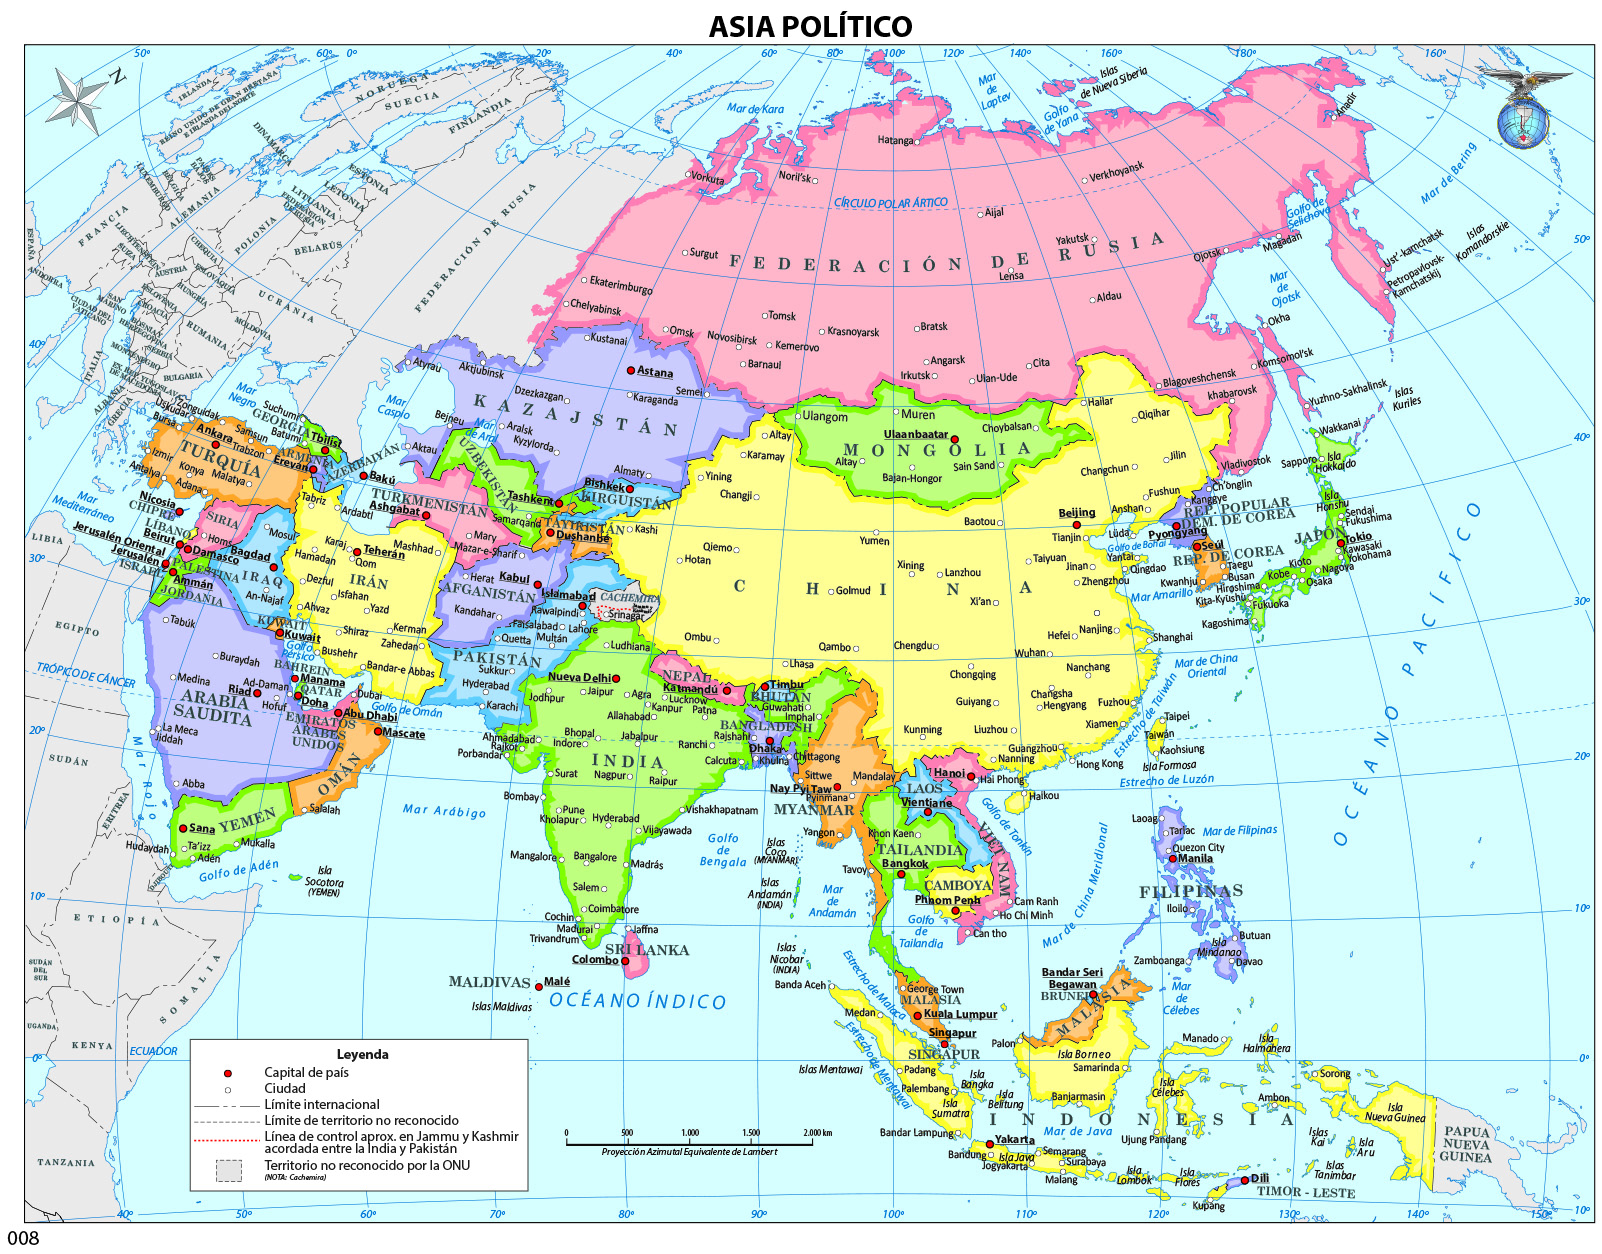 Mapa político de Asia - Curriculum Nacional. MINEDUC. Chile. on map of asia with asia, map of east asia only, mapa politica asia, lanzhou on a political map of asia, map of asia and america, 1940s map of europe and asia, map od asia, map of asia 2013, full map of asia, map of asia countries, whole map of asia,